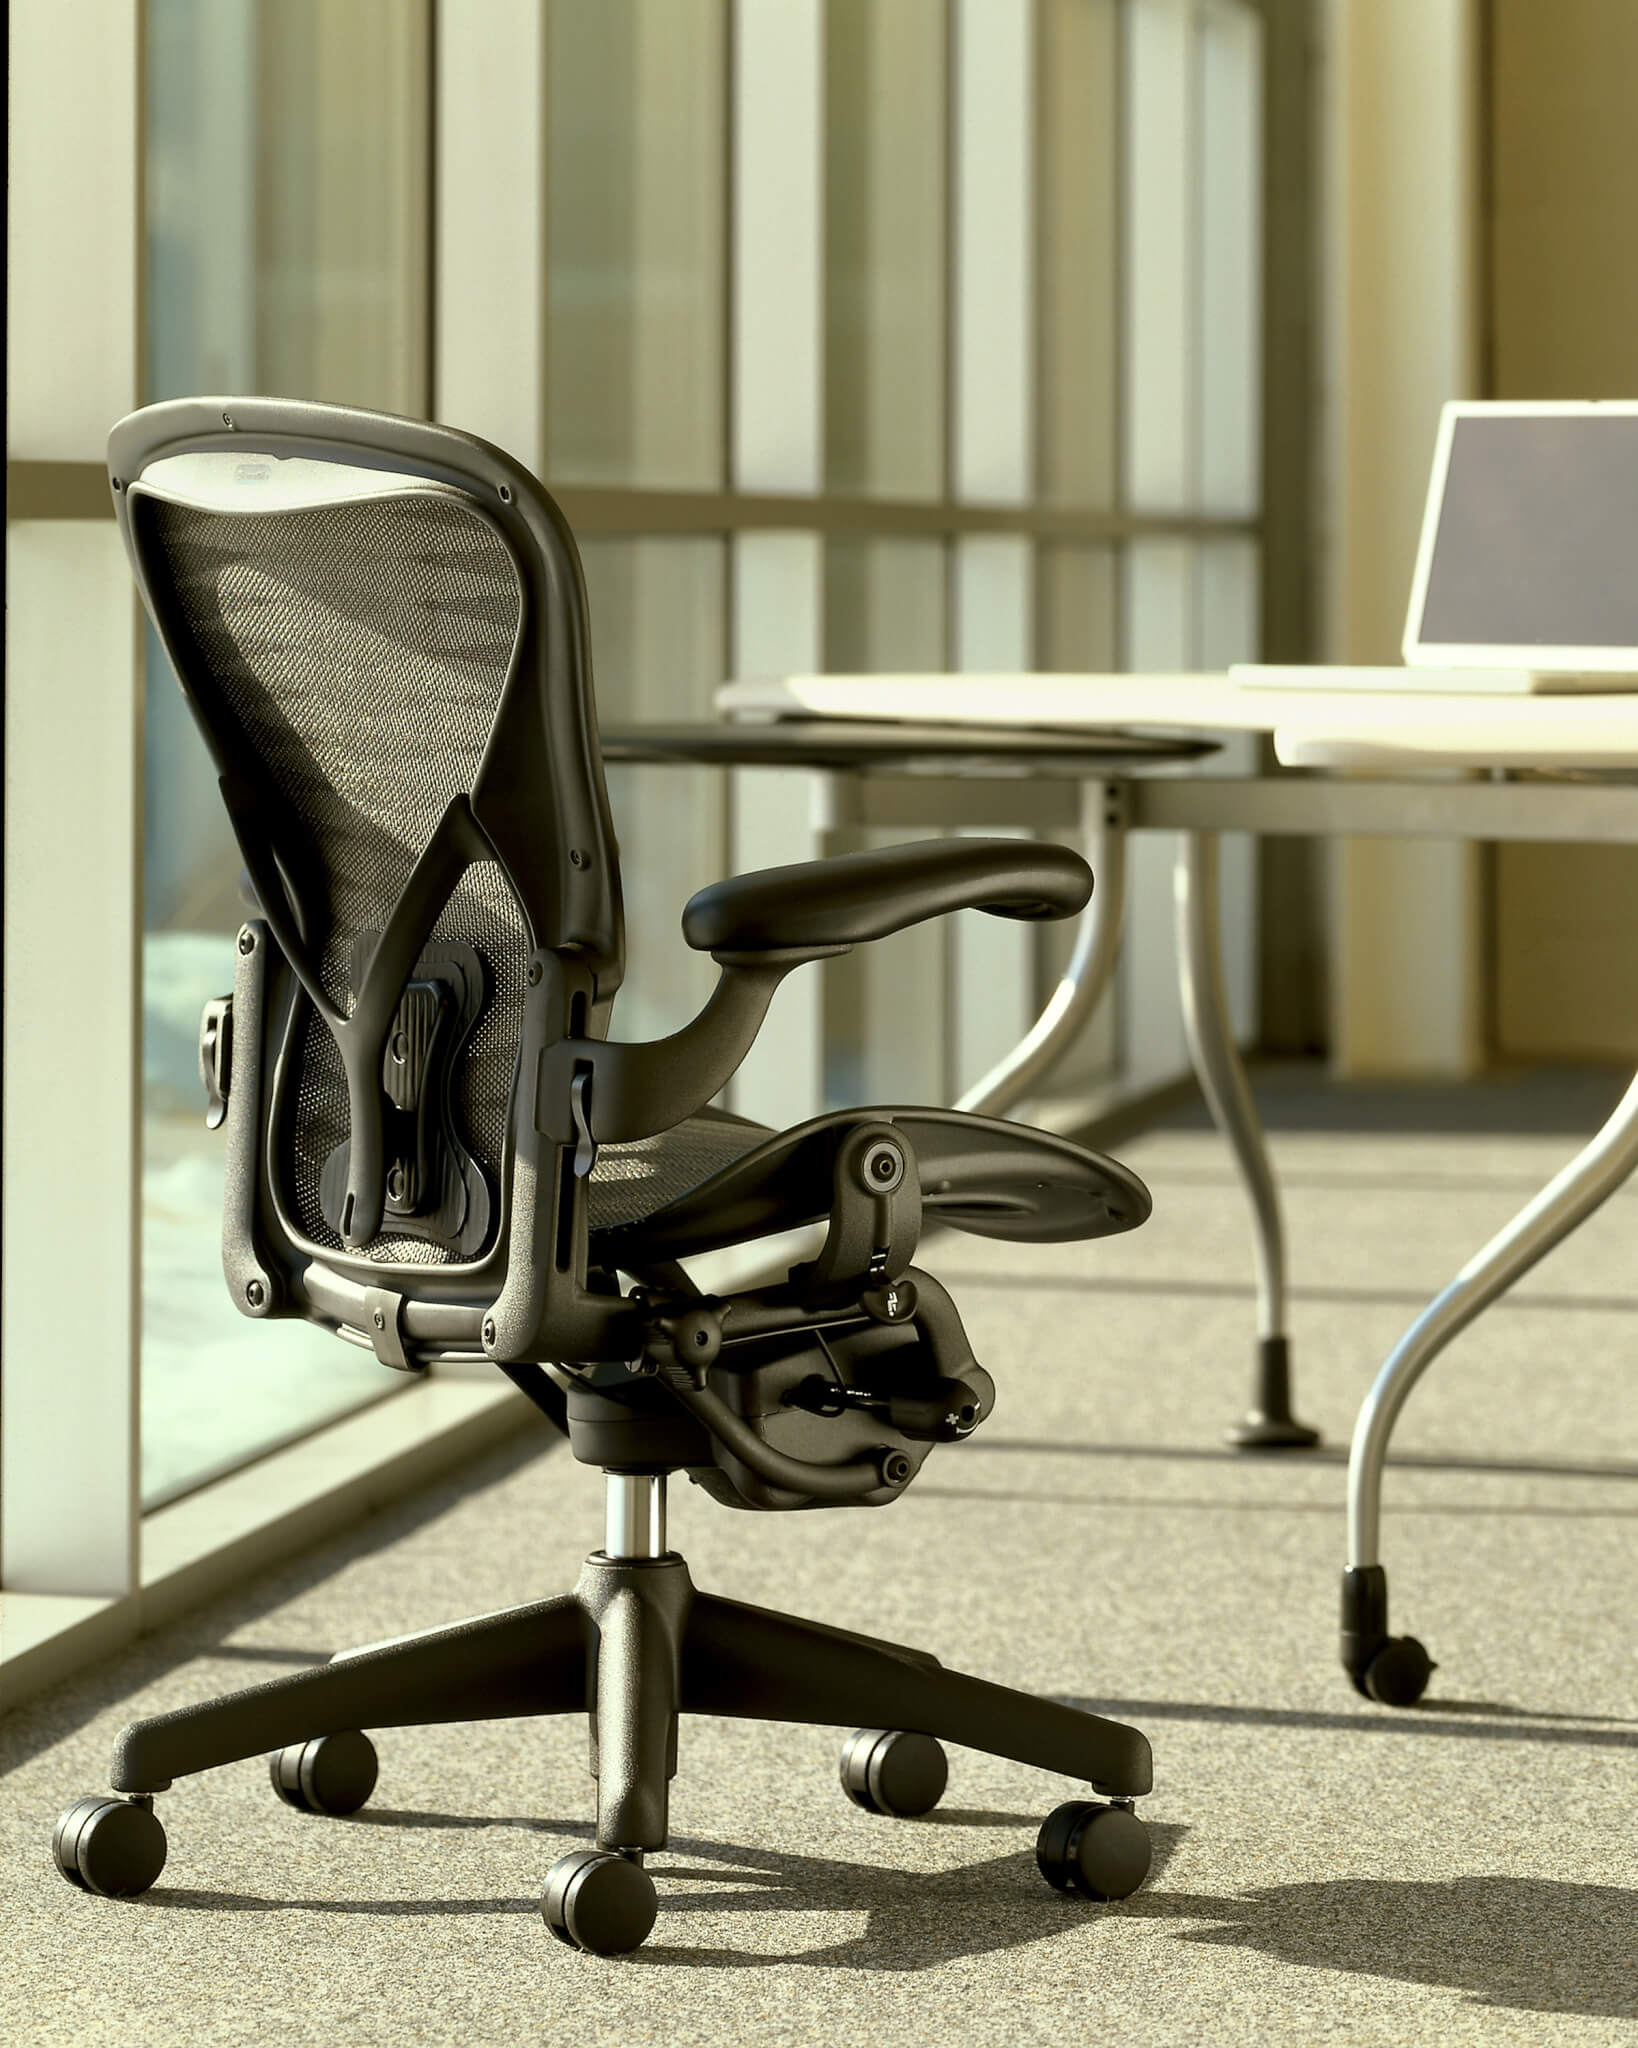 Freedom Chair Humanscale | Humanscale Freedom Chair | Humanscale Office Chairs